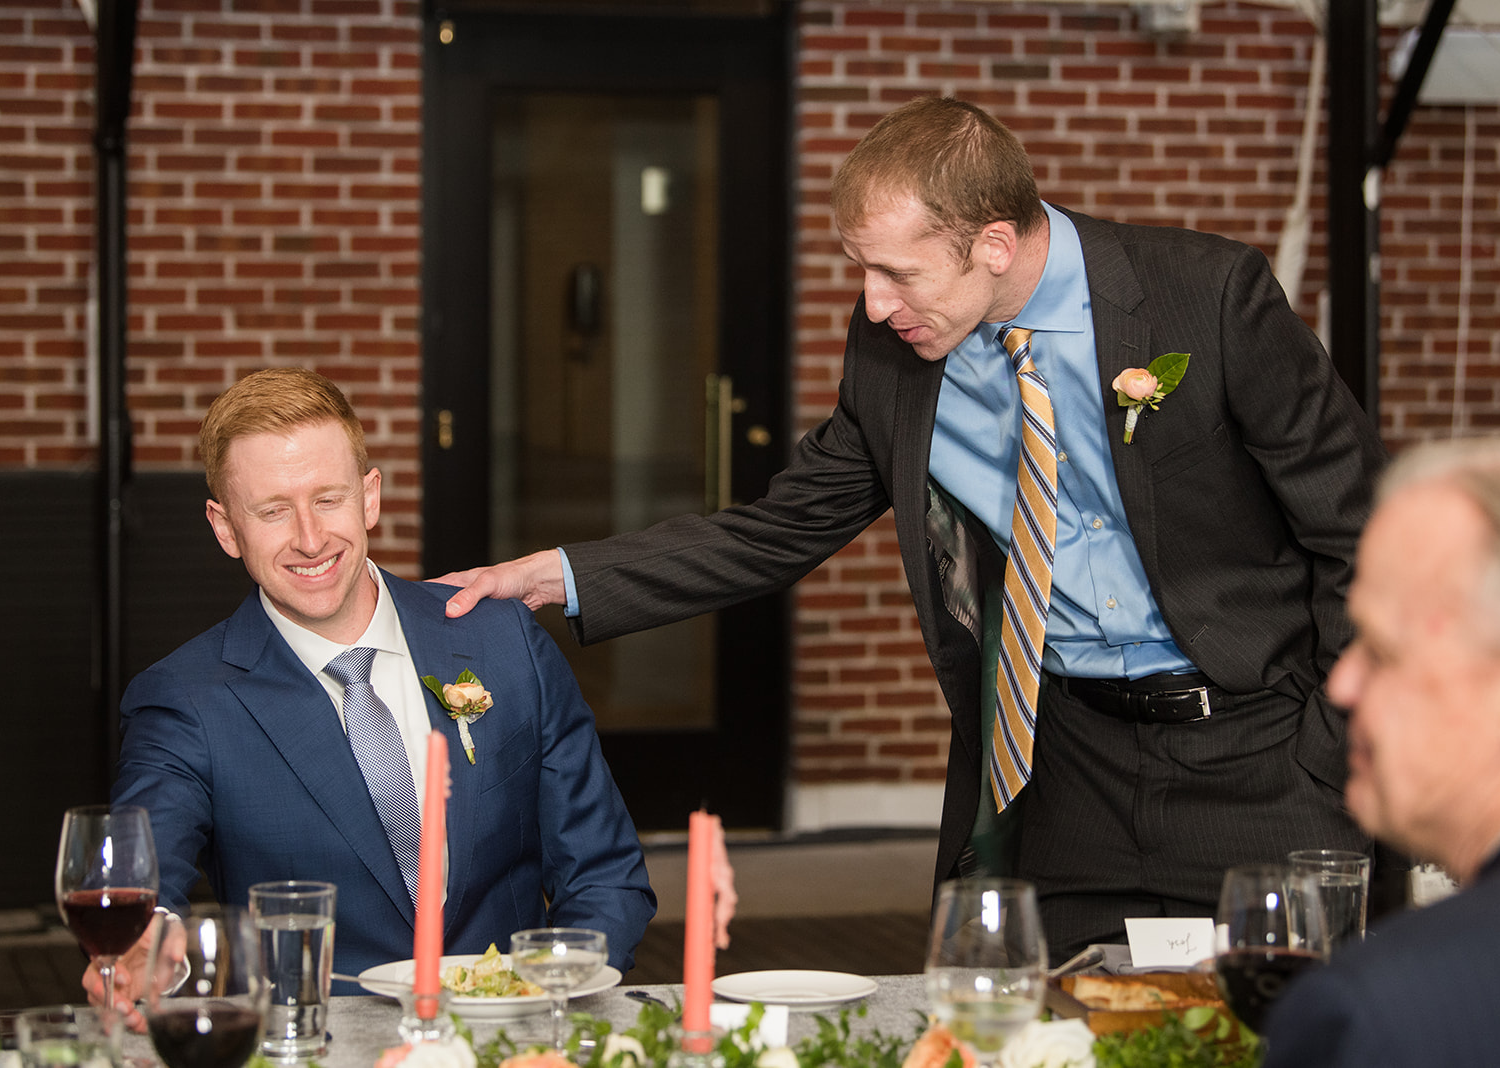 groom smiles as one of his groomsmen shares a speech during their wedding reception